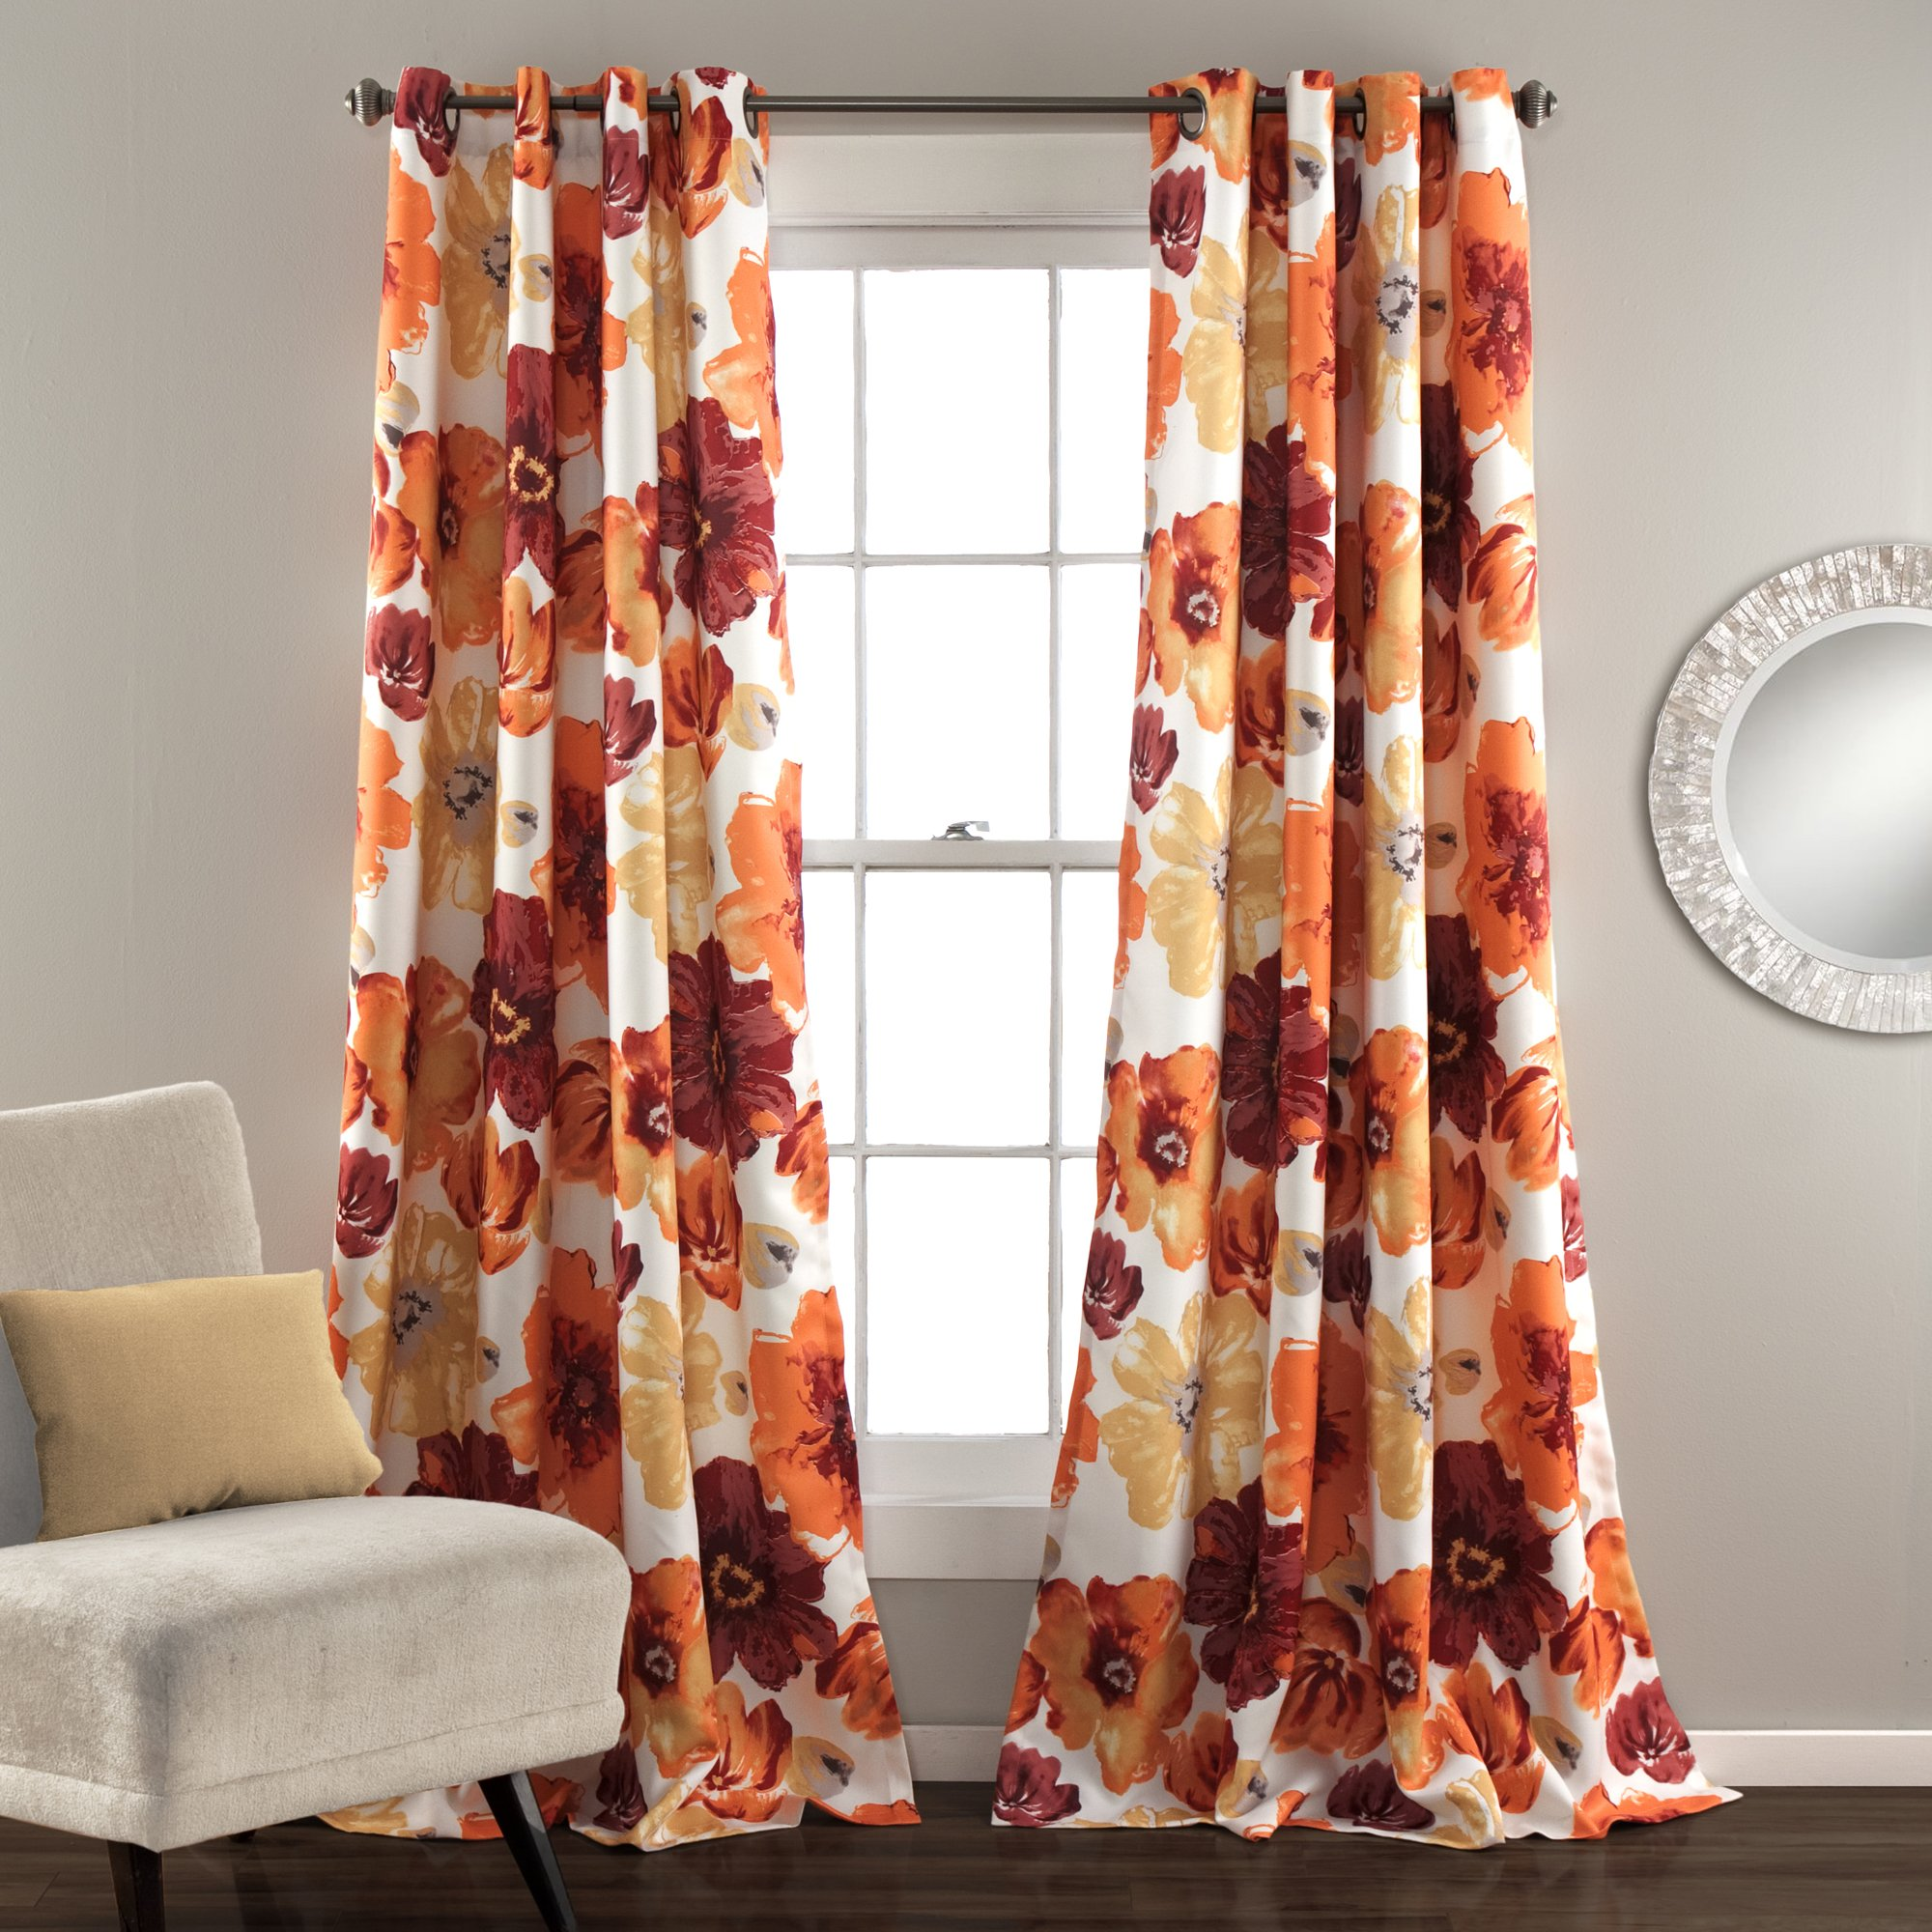 Lush Decor Leah Floral Room Darkening Window Panel Curtain Set for Living, Dining, Bedroom (Pair), 84'' L, Red and Orange by Lush Decor